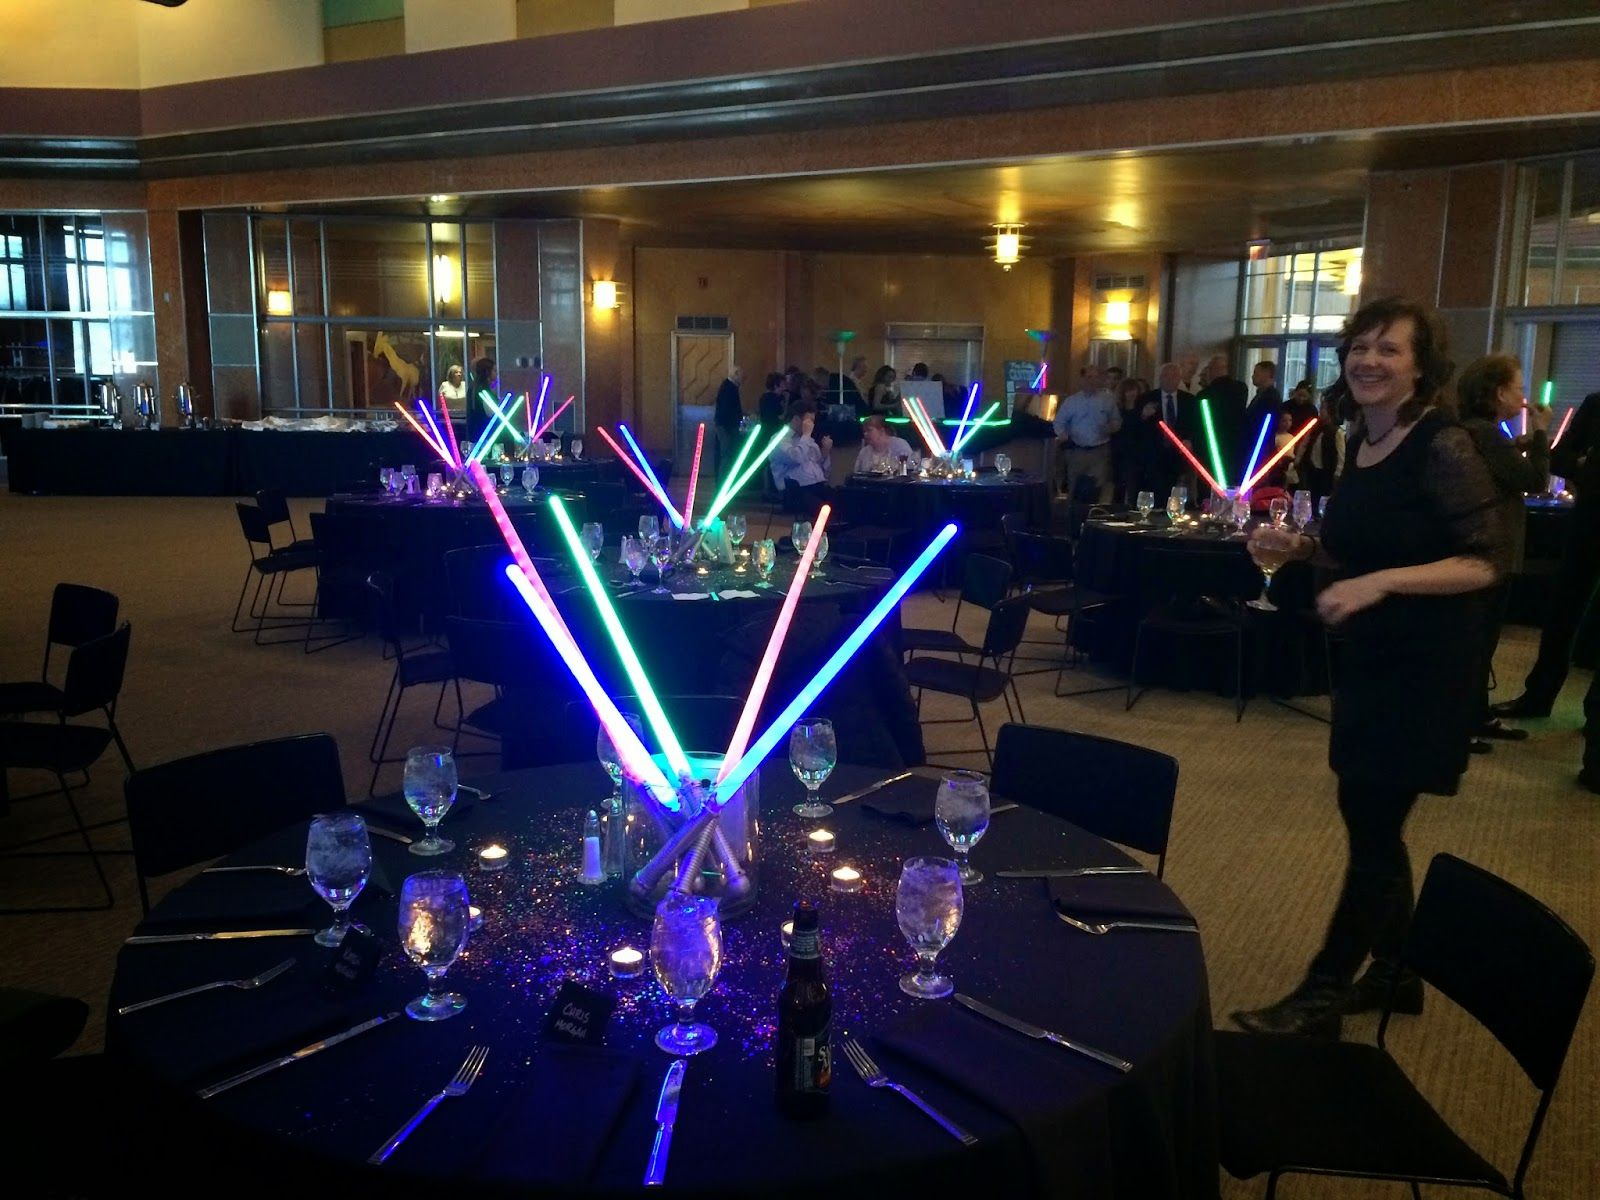 Easy to assemble no flowers star wars party table decor for Star wars dekoration